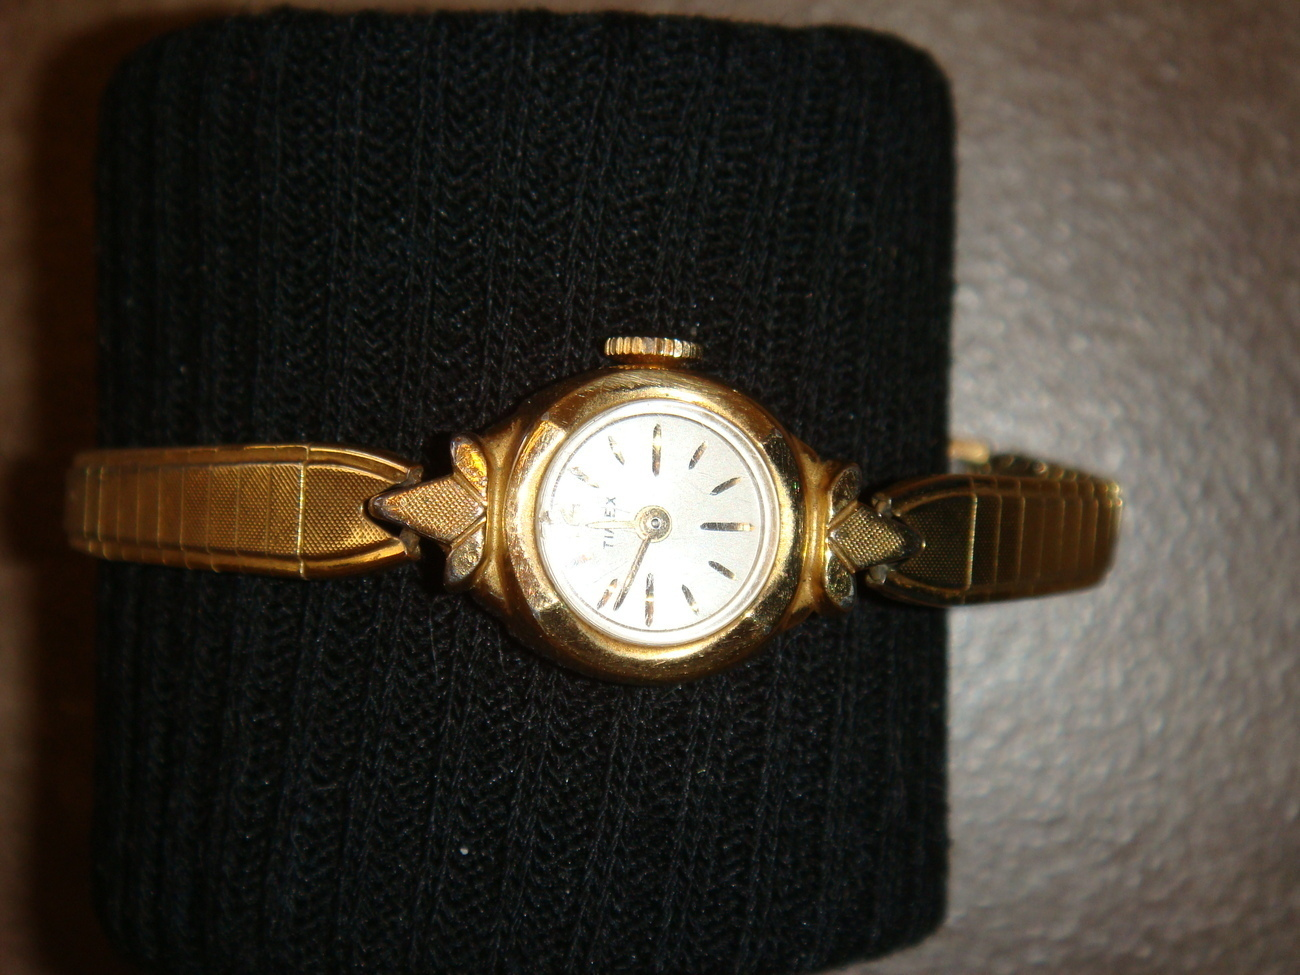 Timex petite ladies' windup watch 1970s collectible